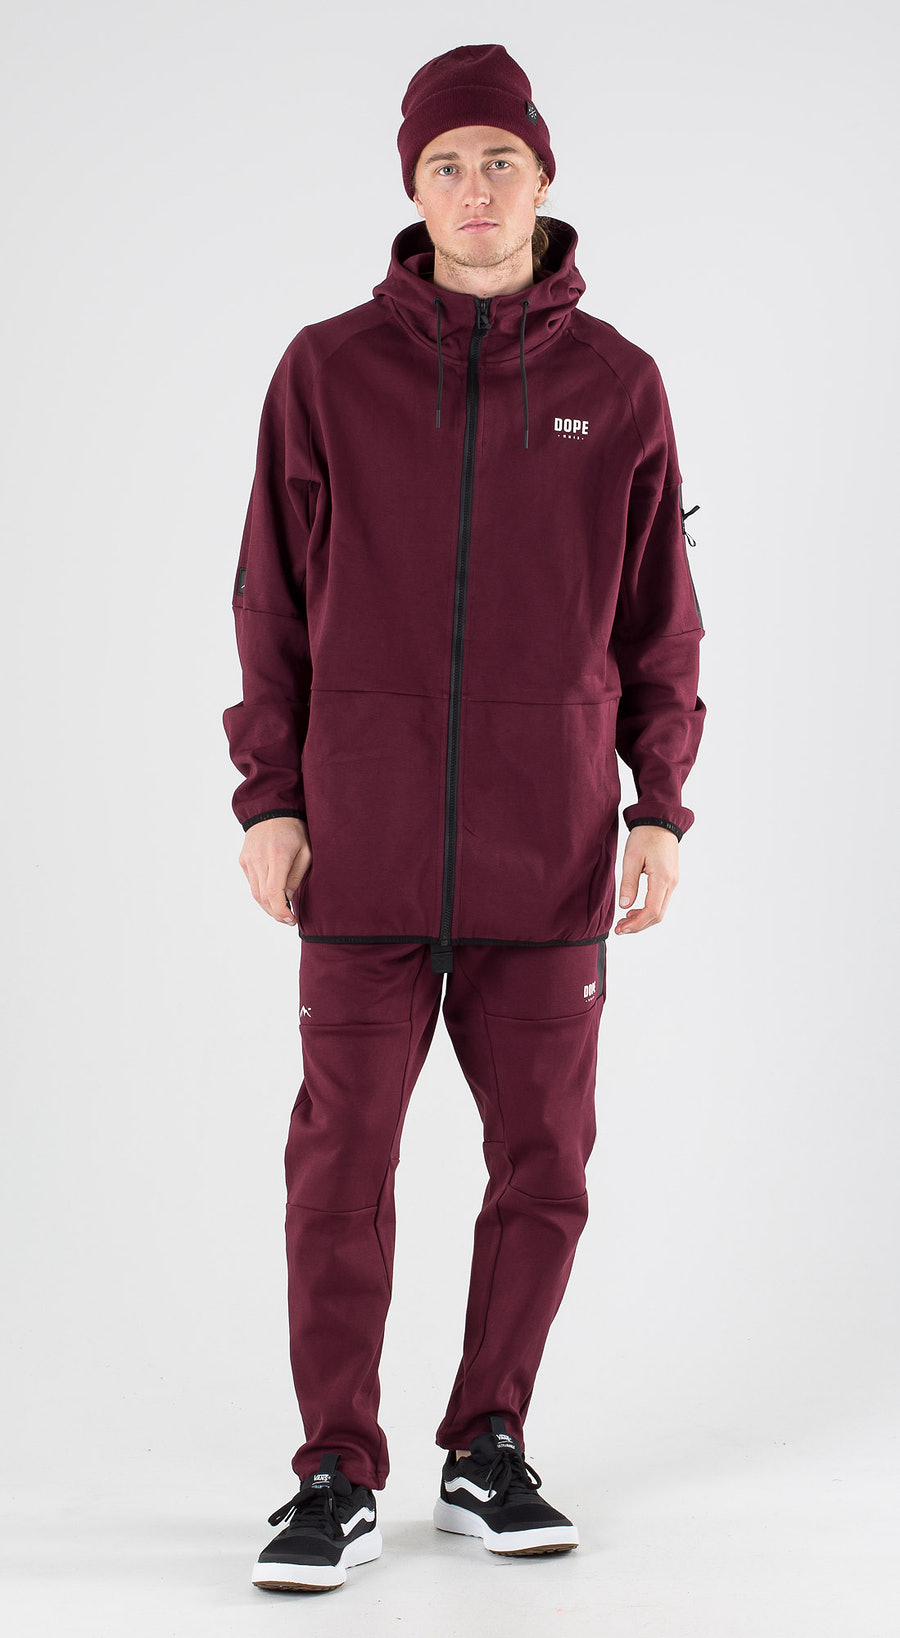 Dope Ronin 2X-UP Zip Burgundy Outfit Multi